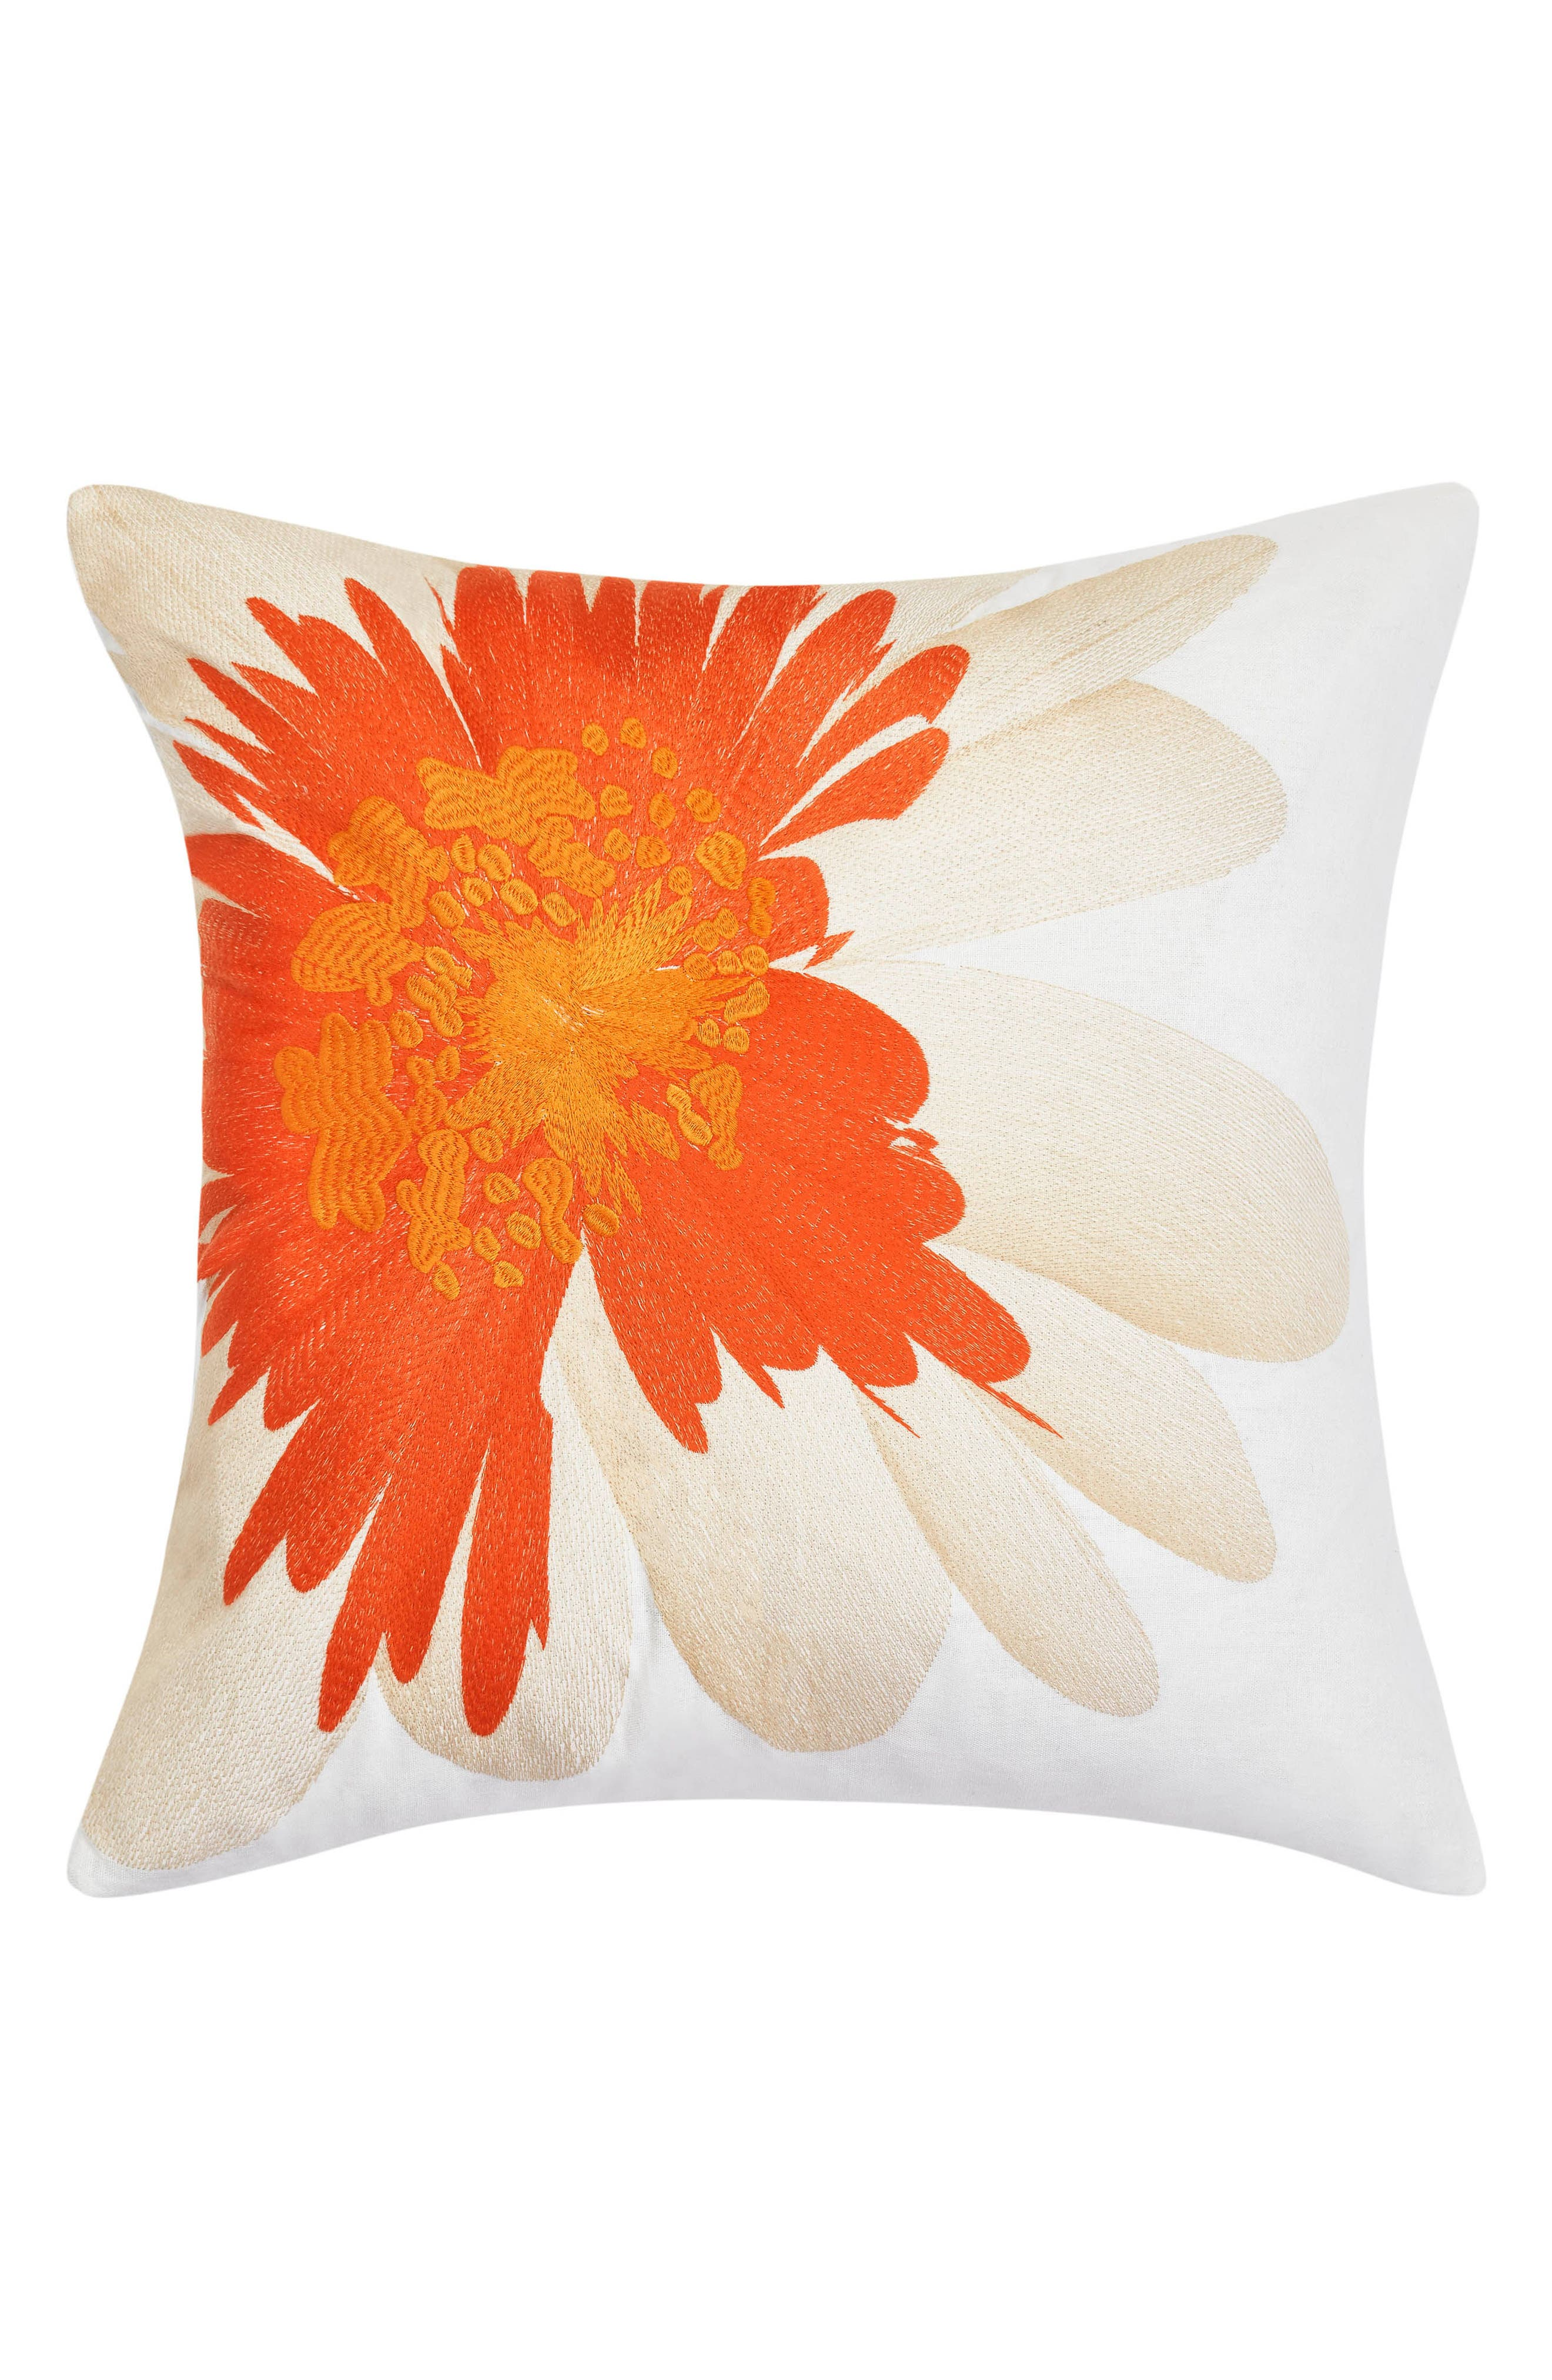 Palm Desert Accent Pillow,                         Main,                         color, Medium Orange